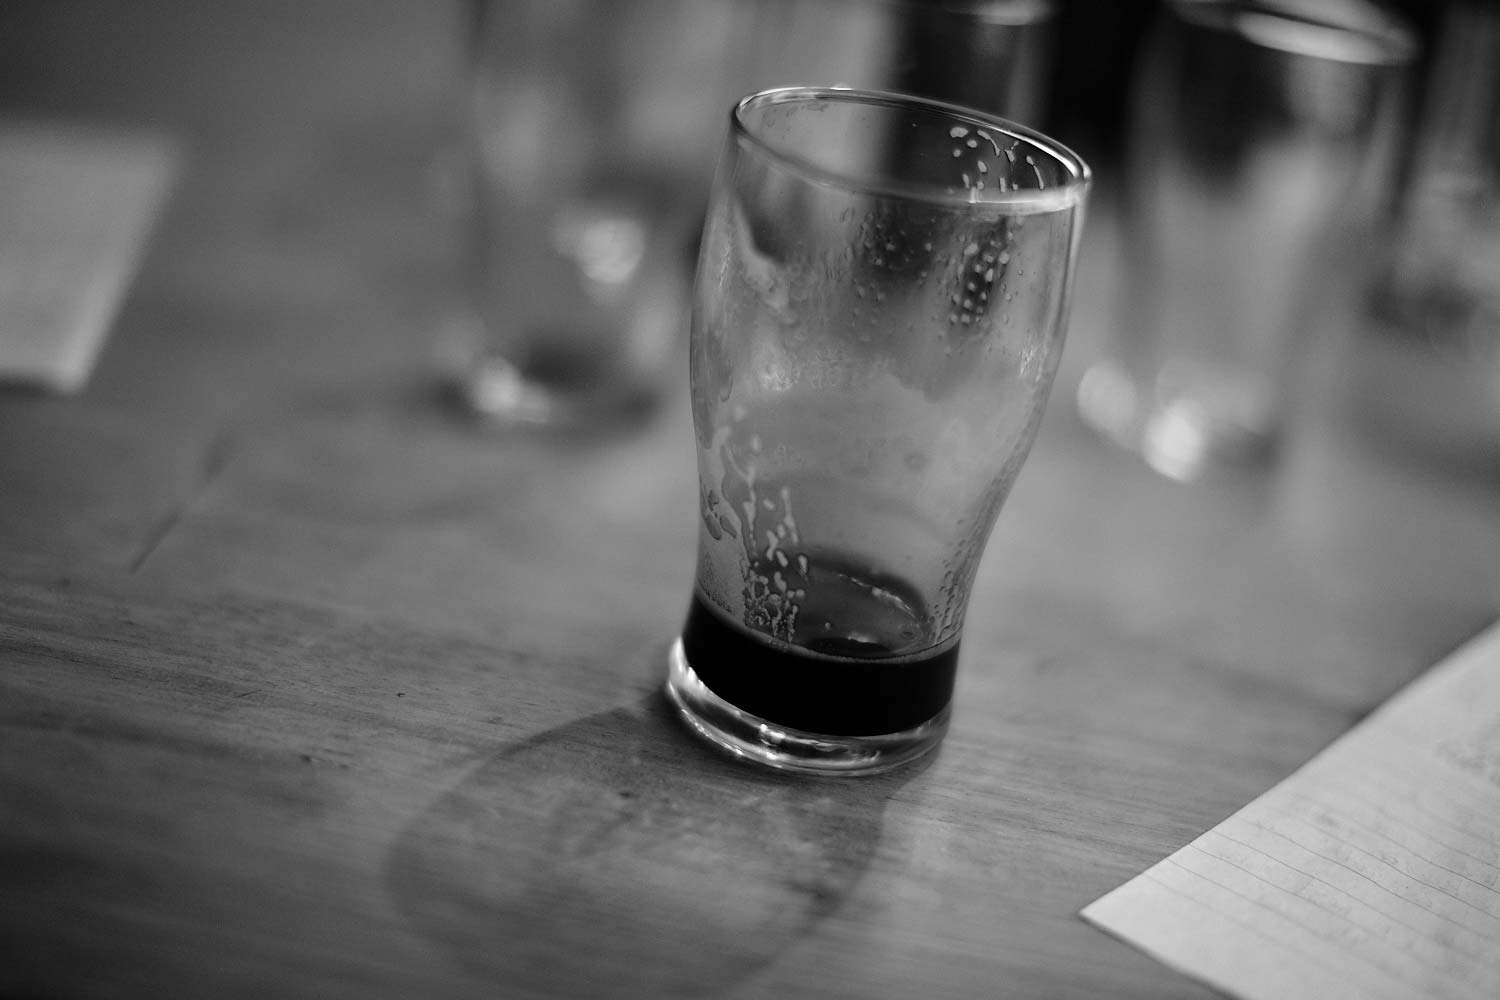 150501_lindh_craft_beer_norrkopings_bryggeri_0013